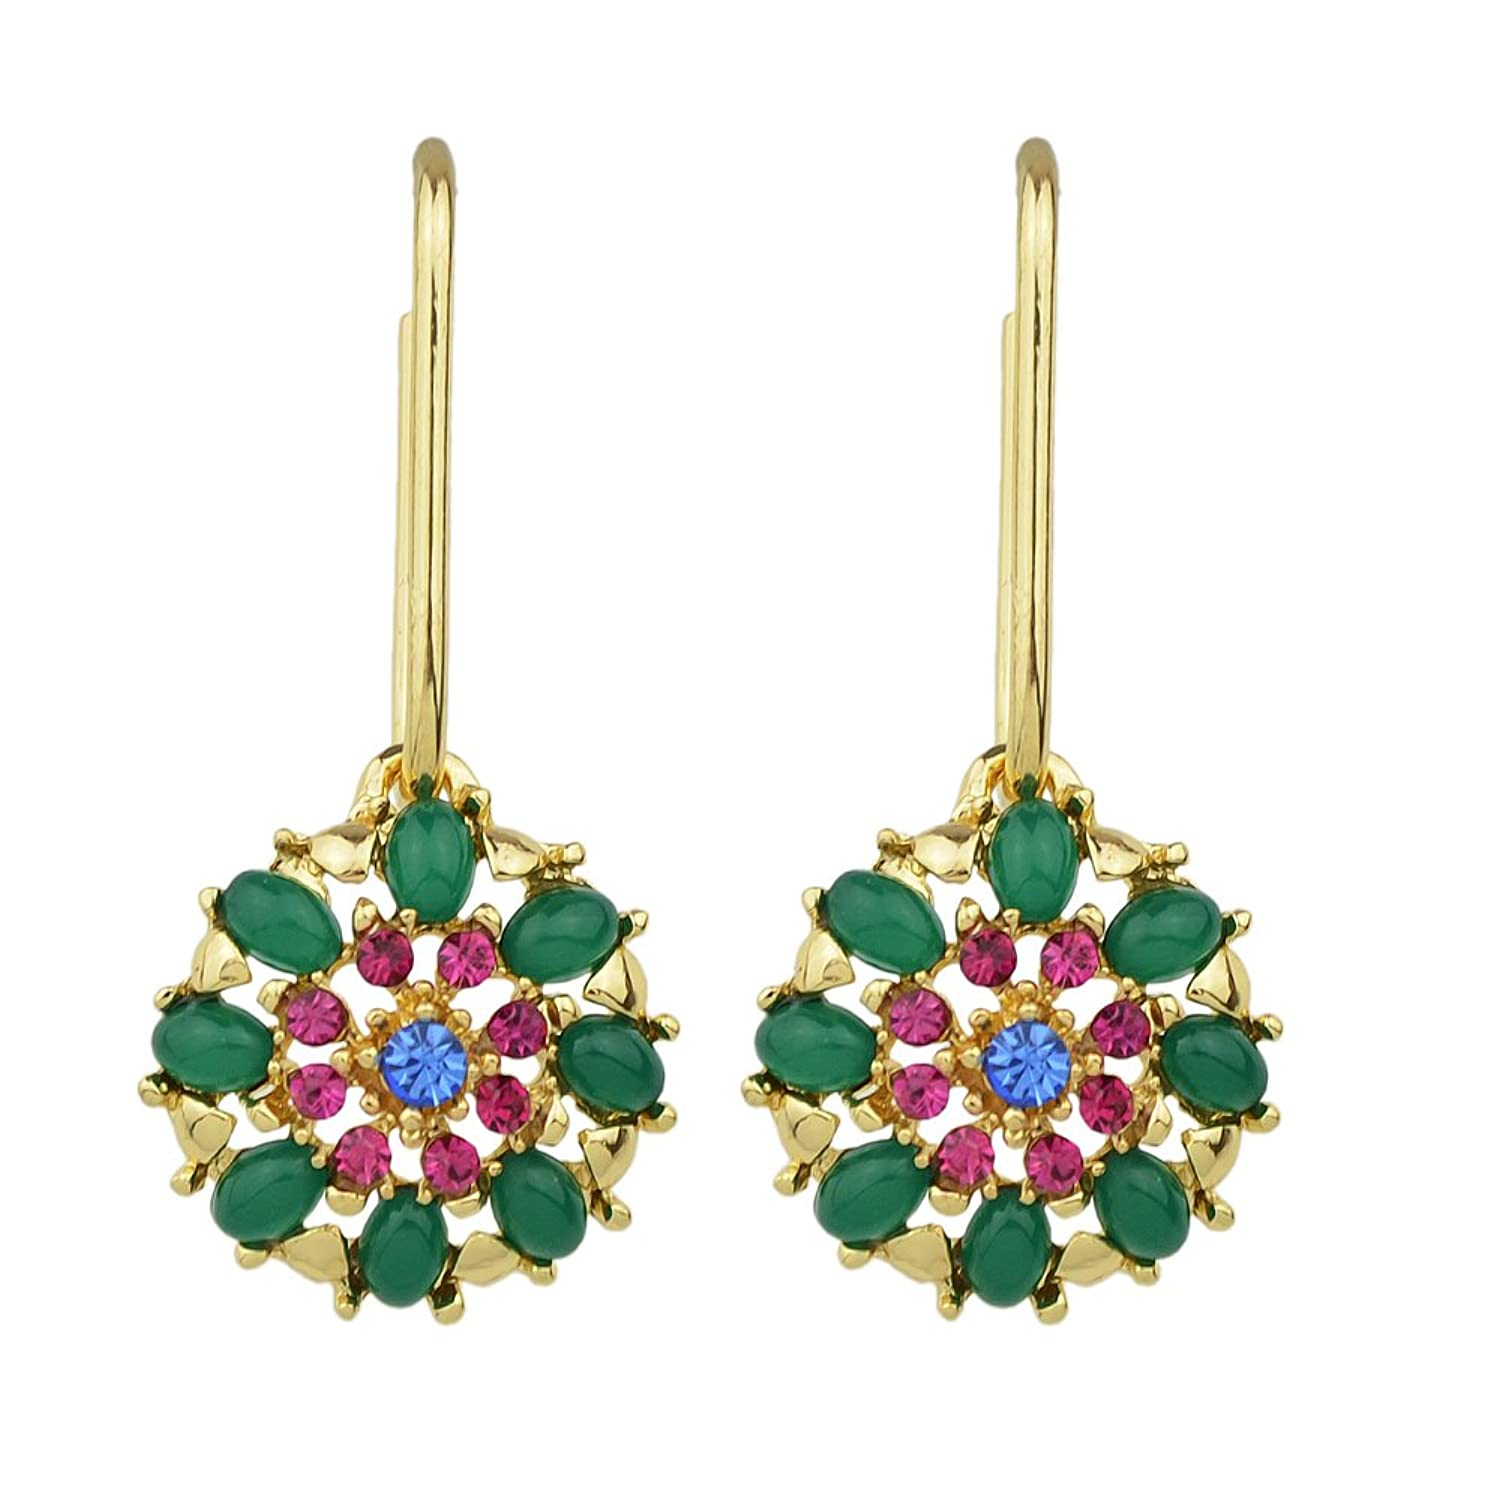 Feelontop New Green Beads Hotpink Blue Crystal Round Hoop Flow Drop Earring Gold Tone with Jewelry Pouch